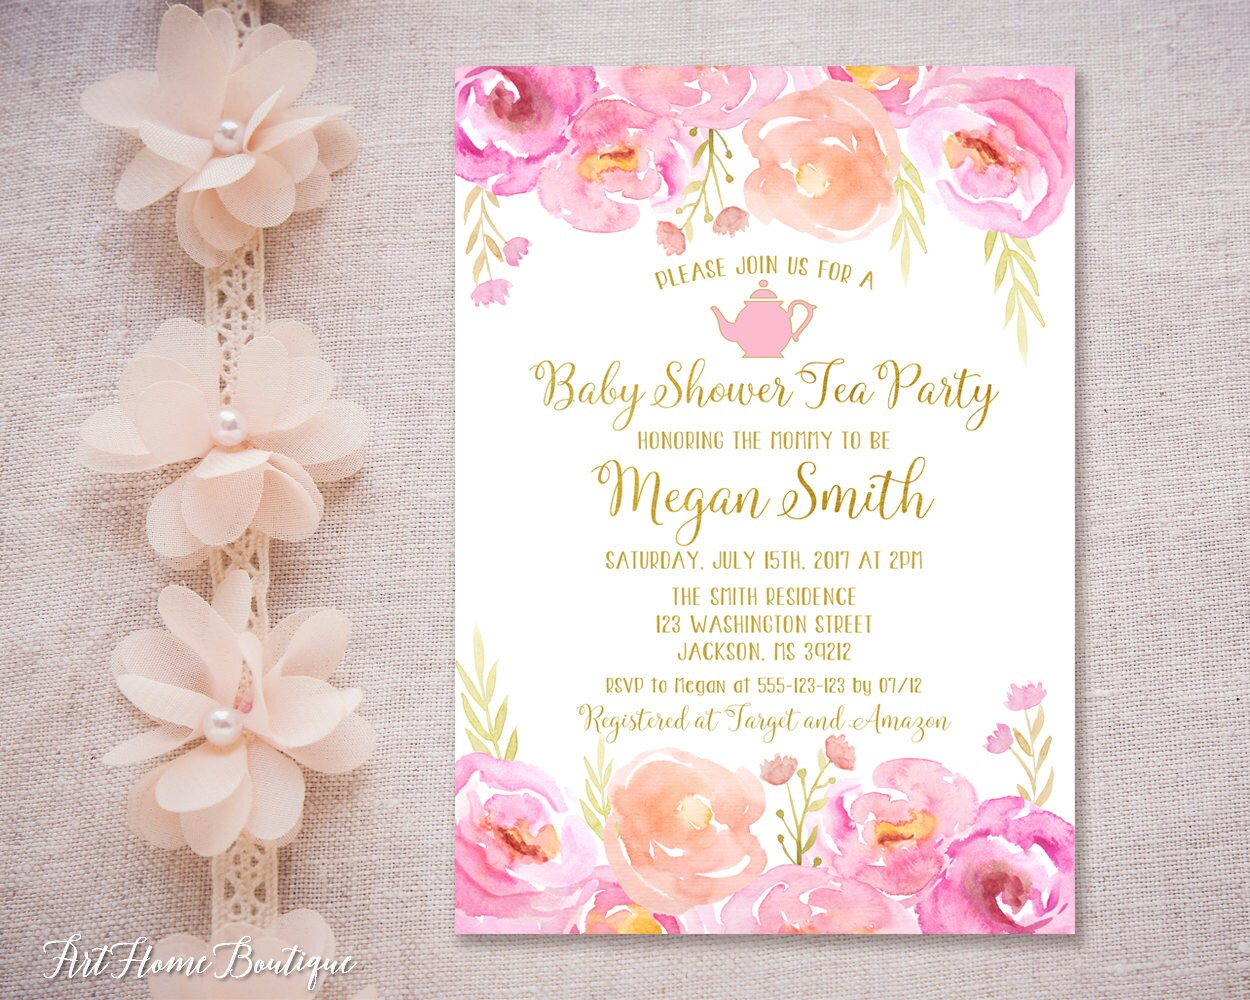 Baby shower sprinkle Tea Party Invitation Baby Shower Tea | Etsy